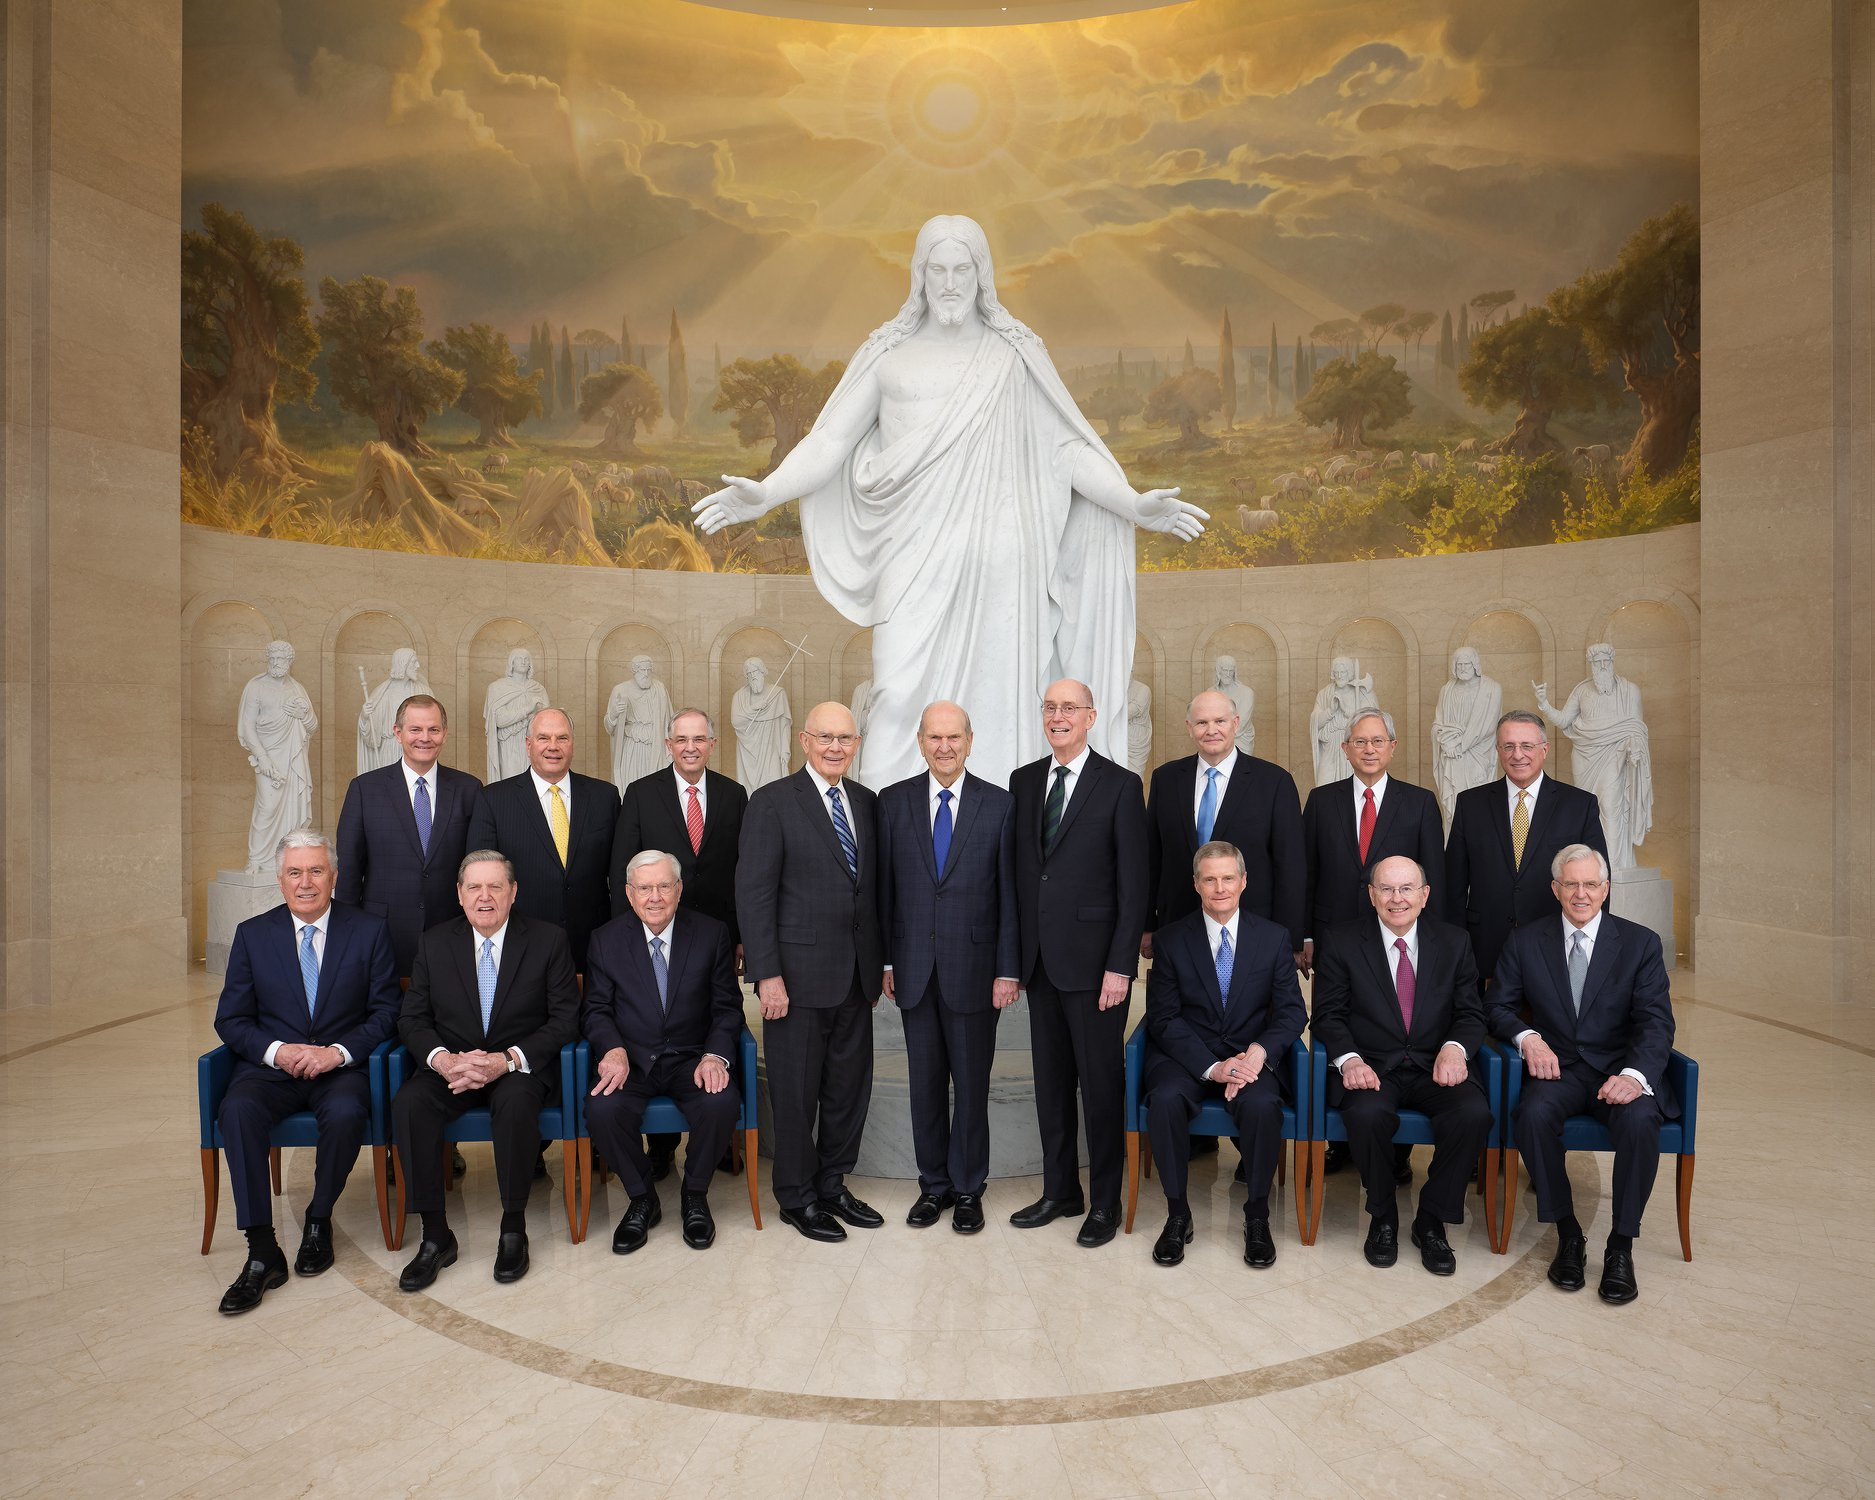 first presidency twelve apostles nauvoo.jpg